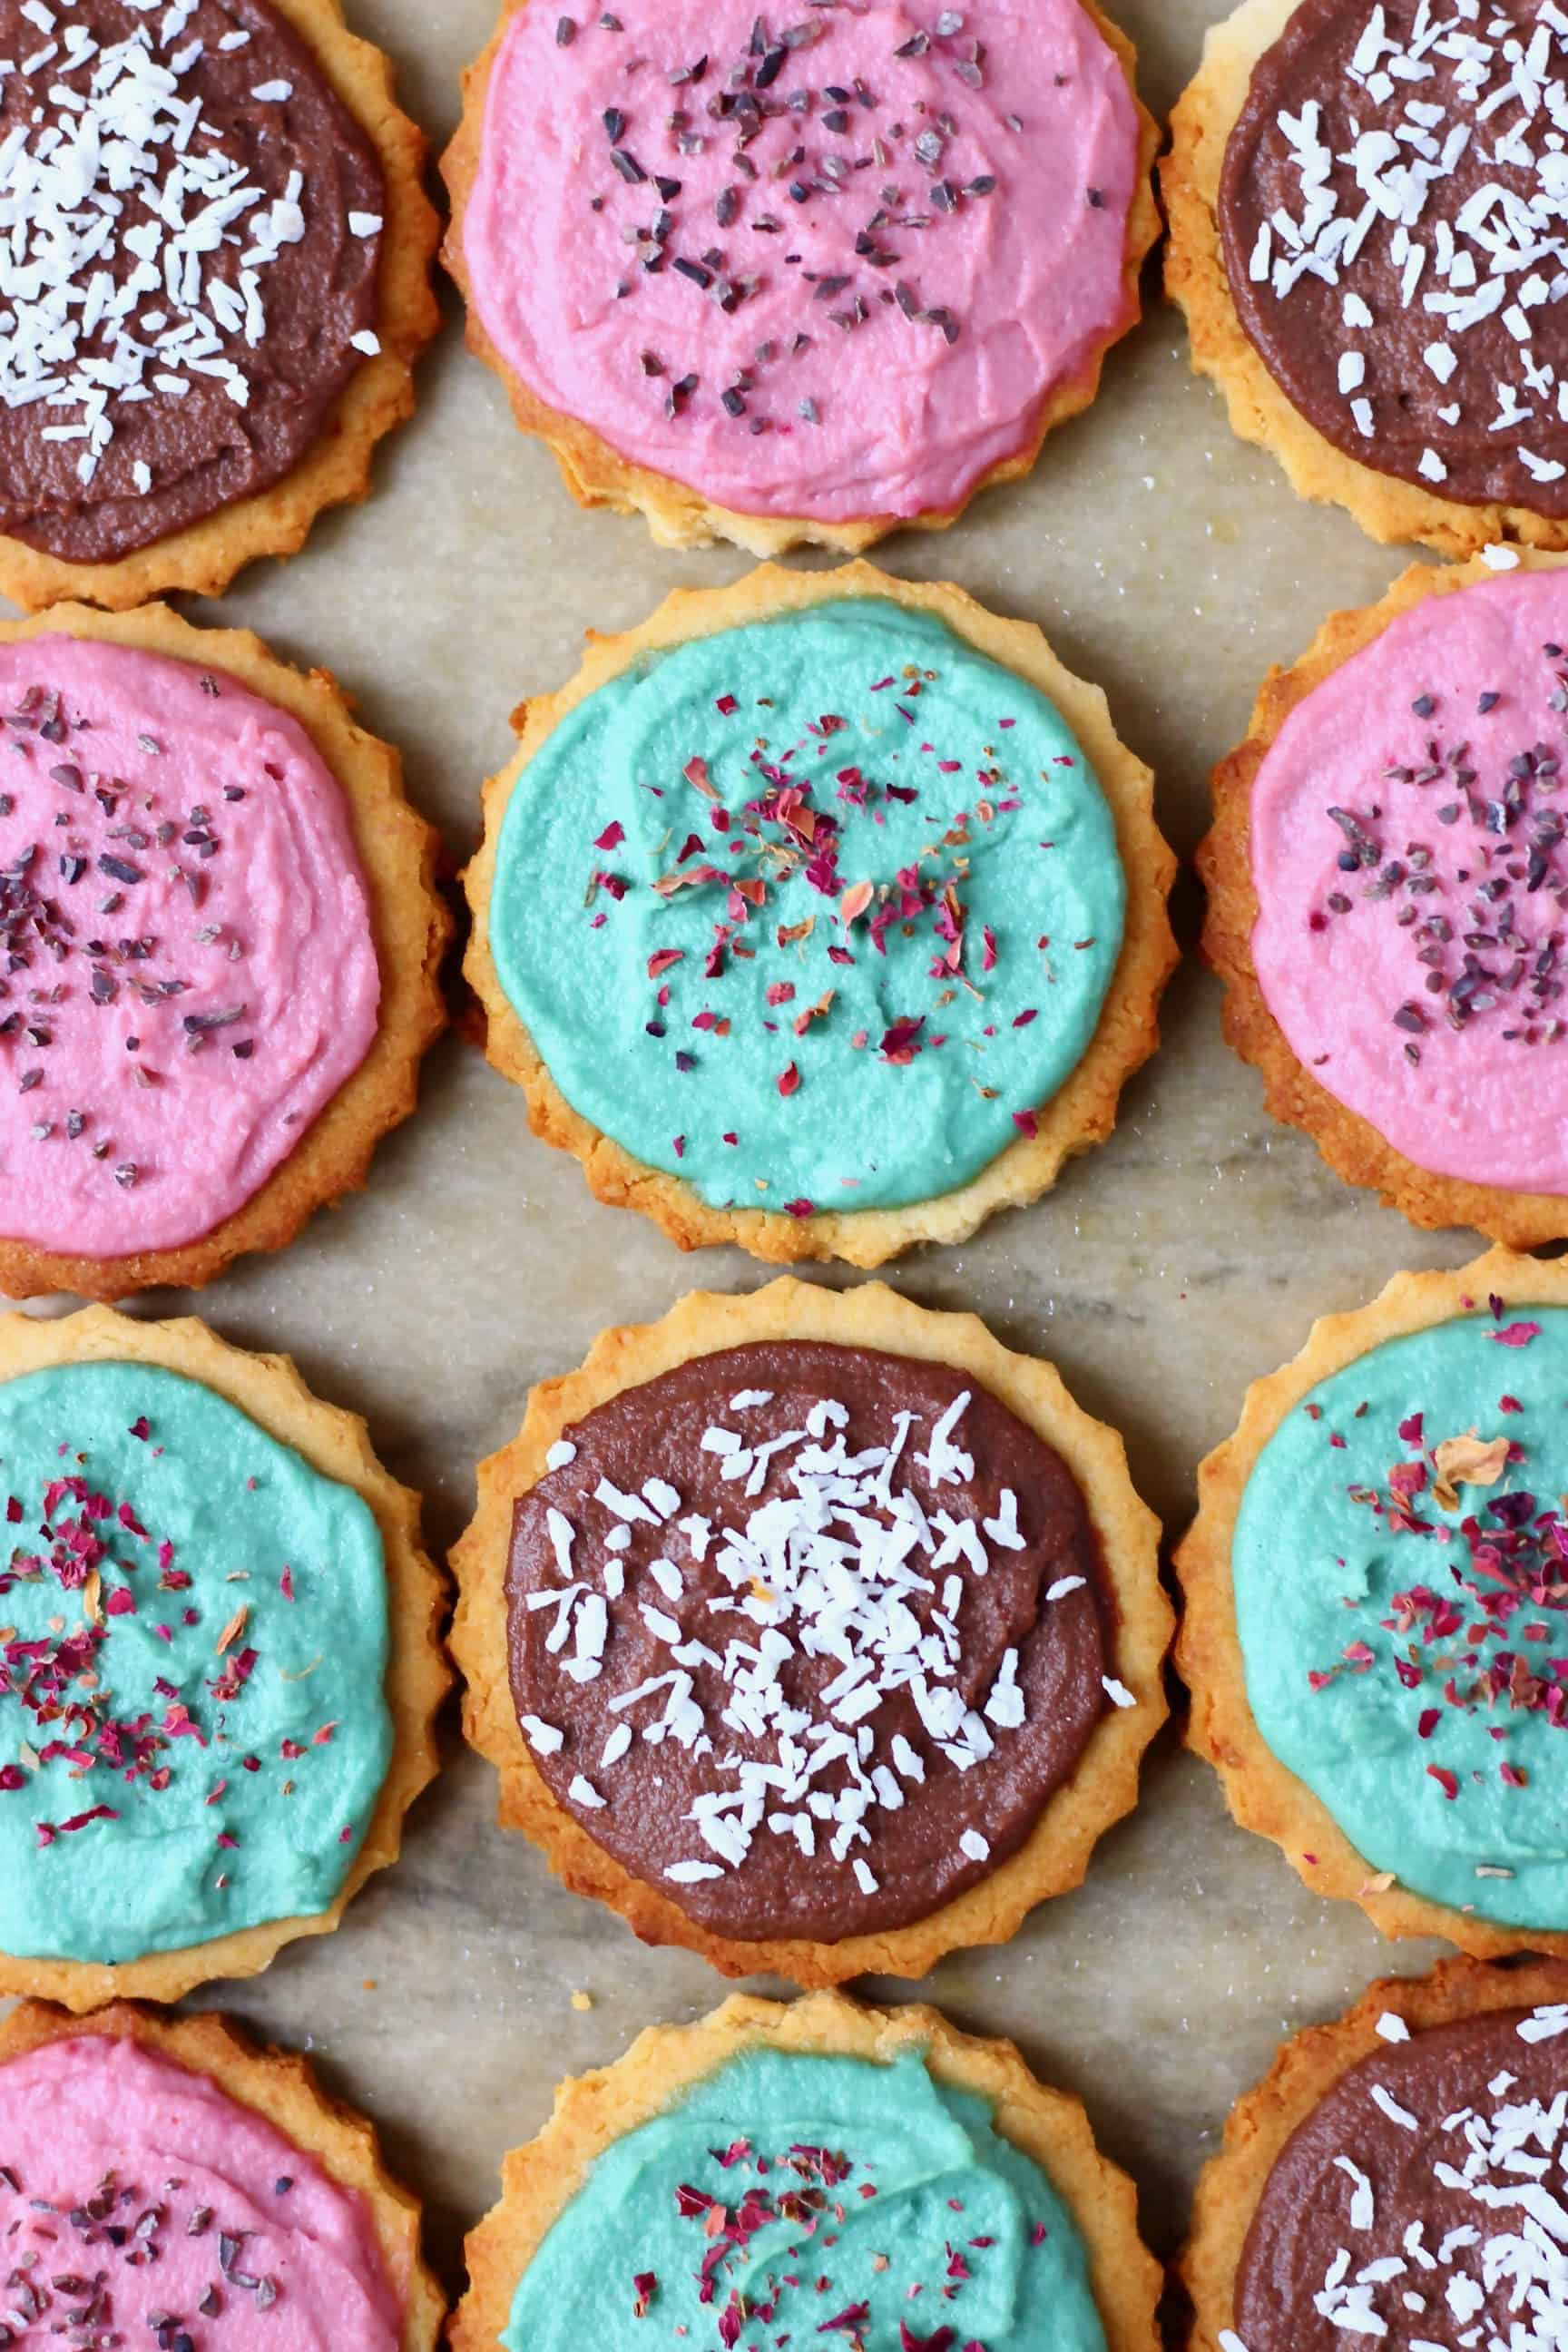 Twelve circular cookies topped with different coloured frosting and sprinkles on a sheet of brown baking paper